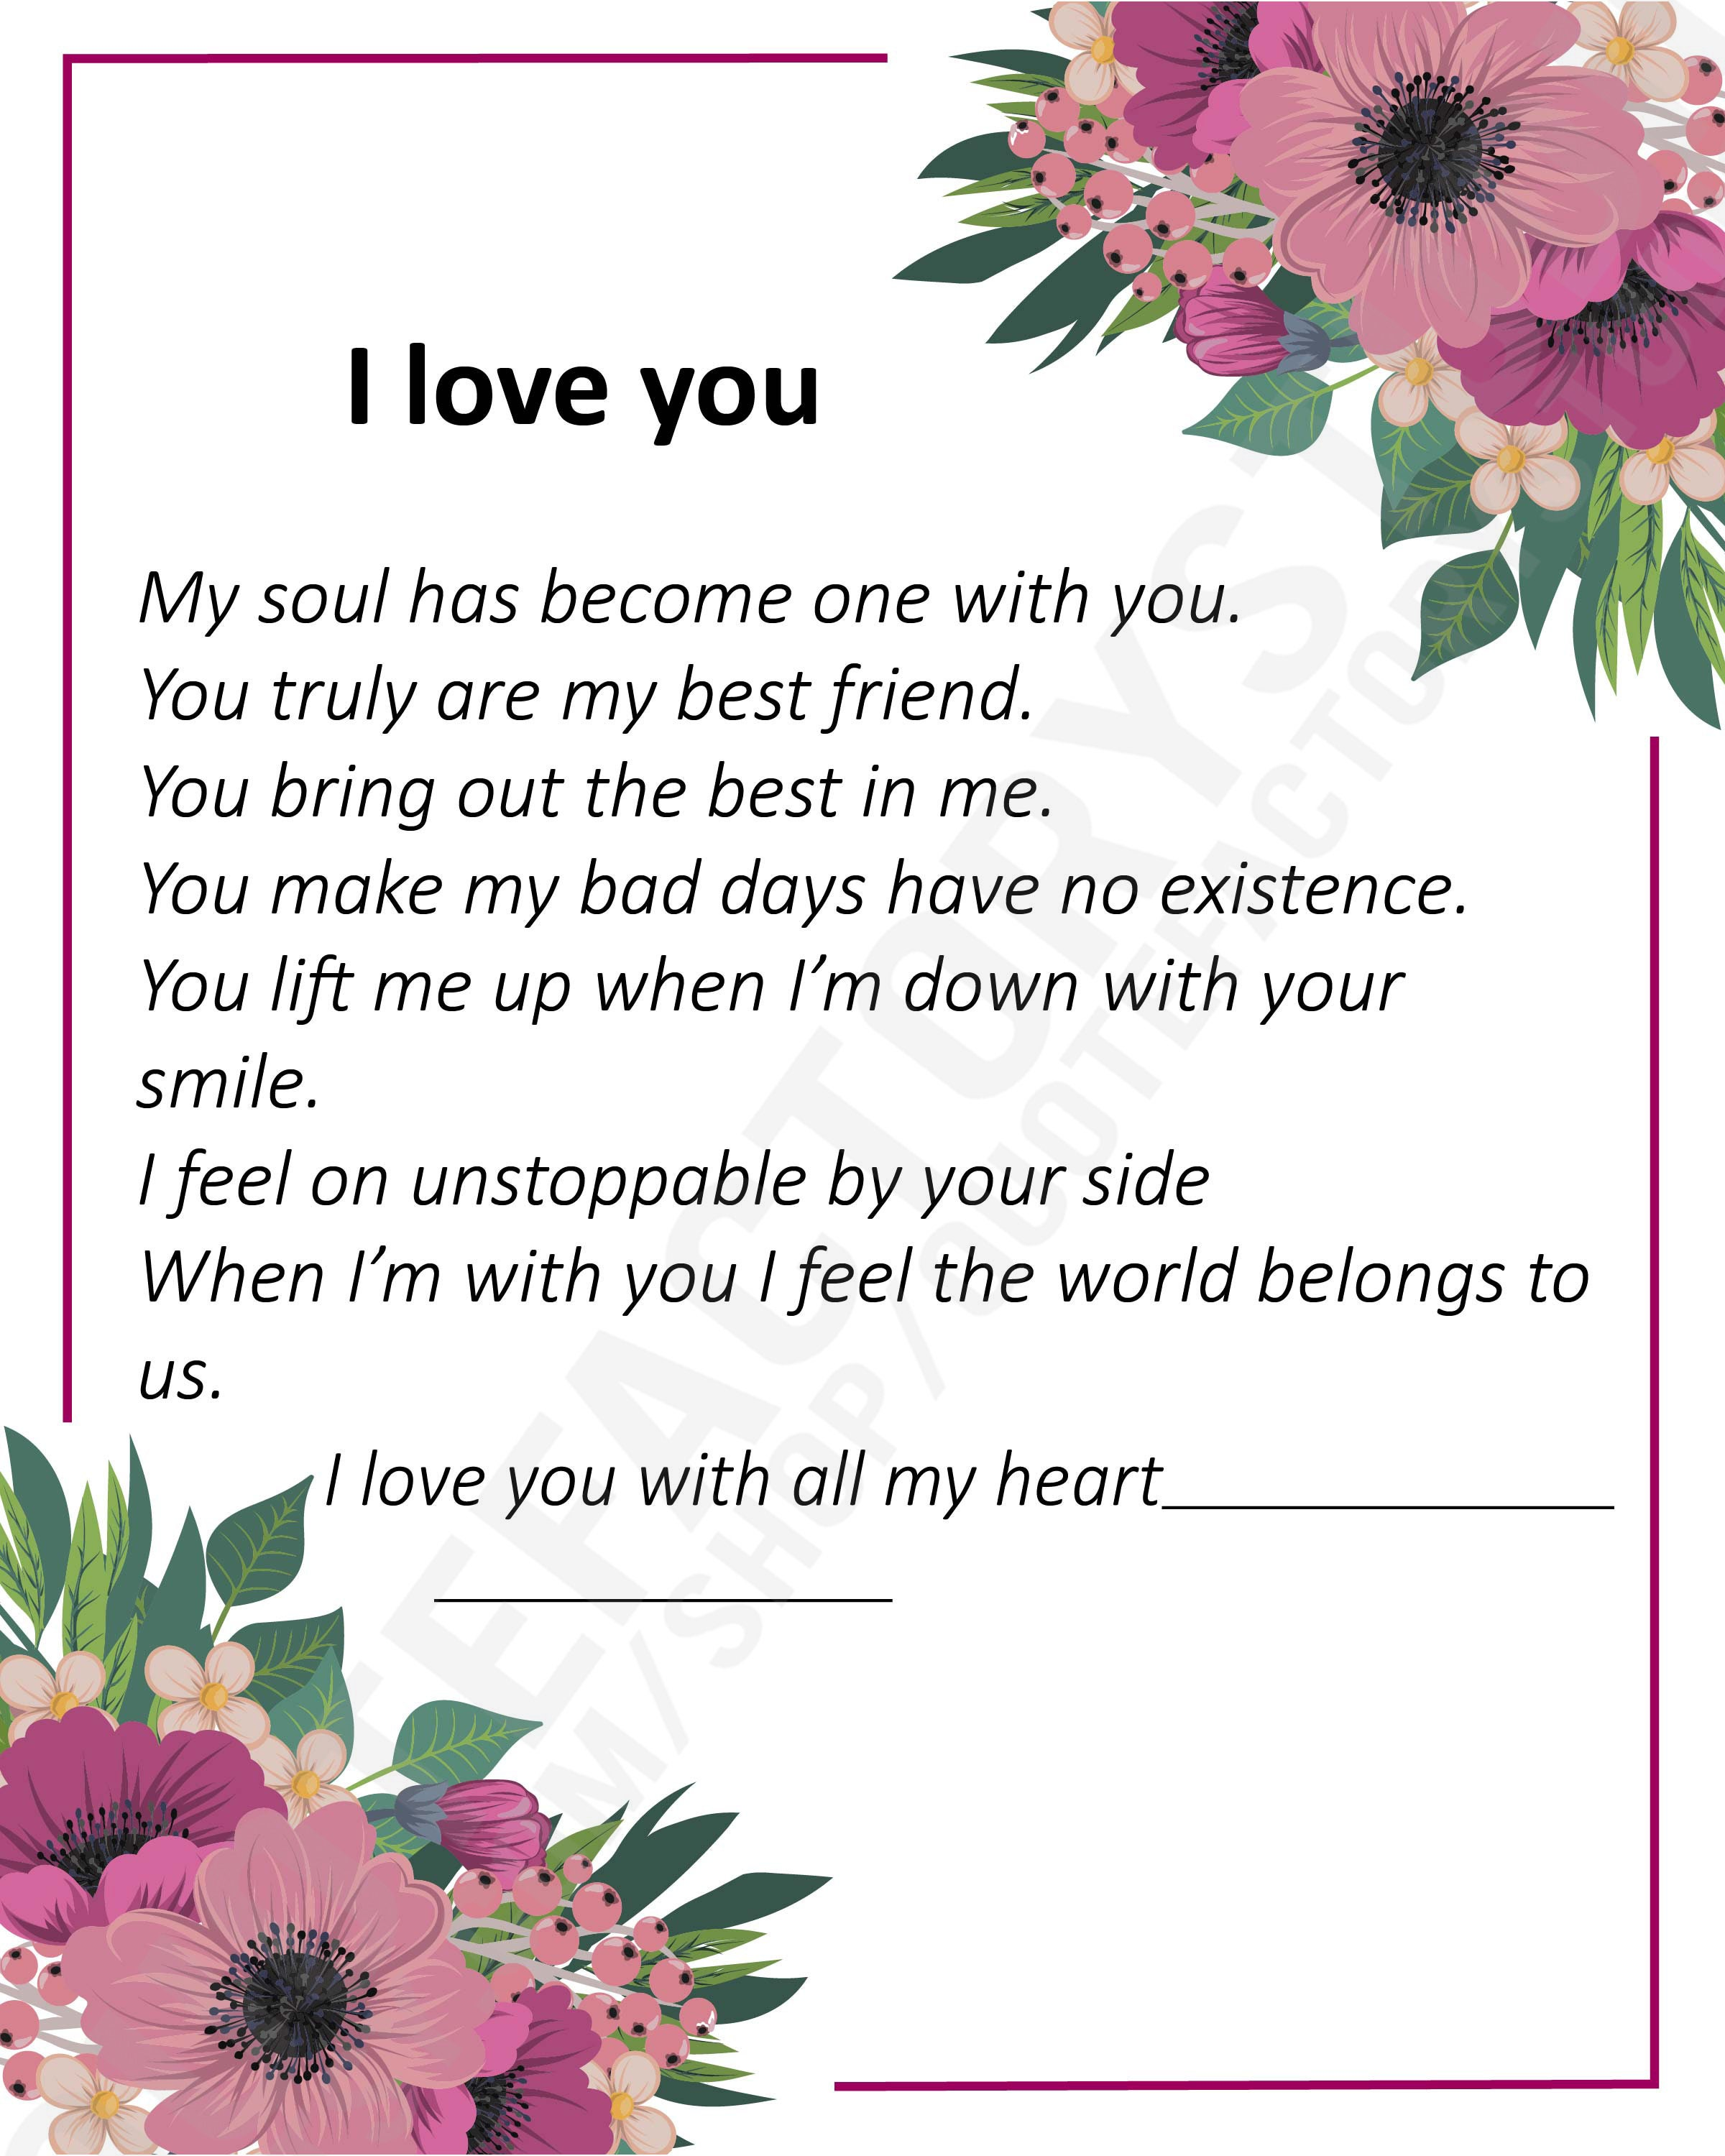 I Love You Letter Soulmate Love Wall Art Romantic Quote Poem